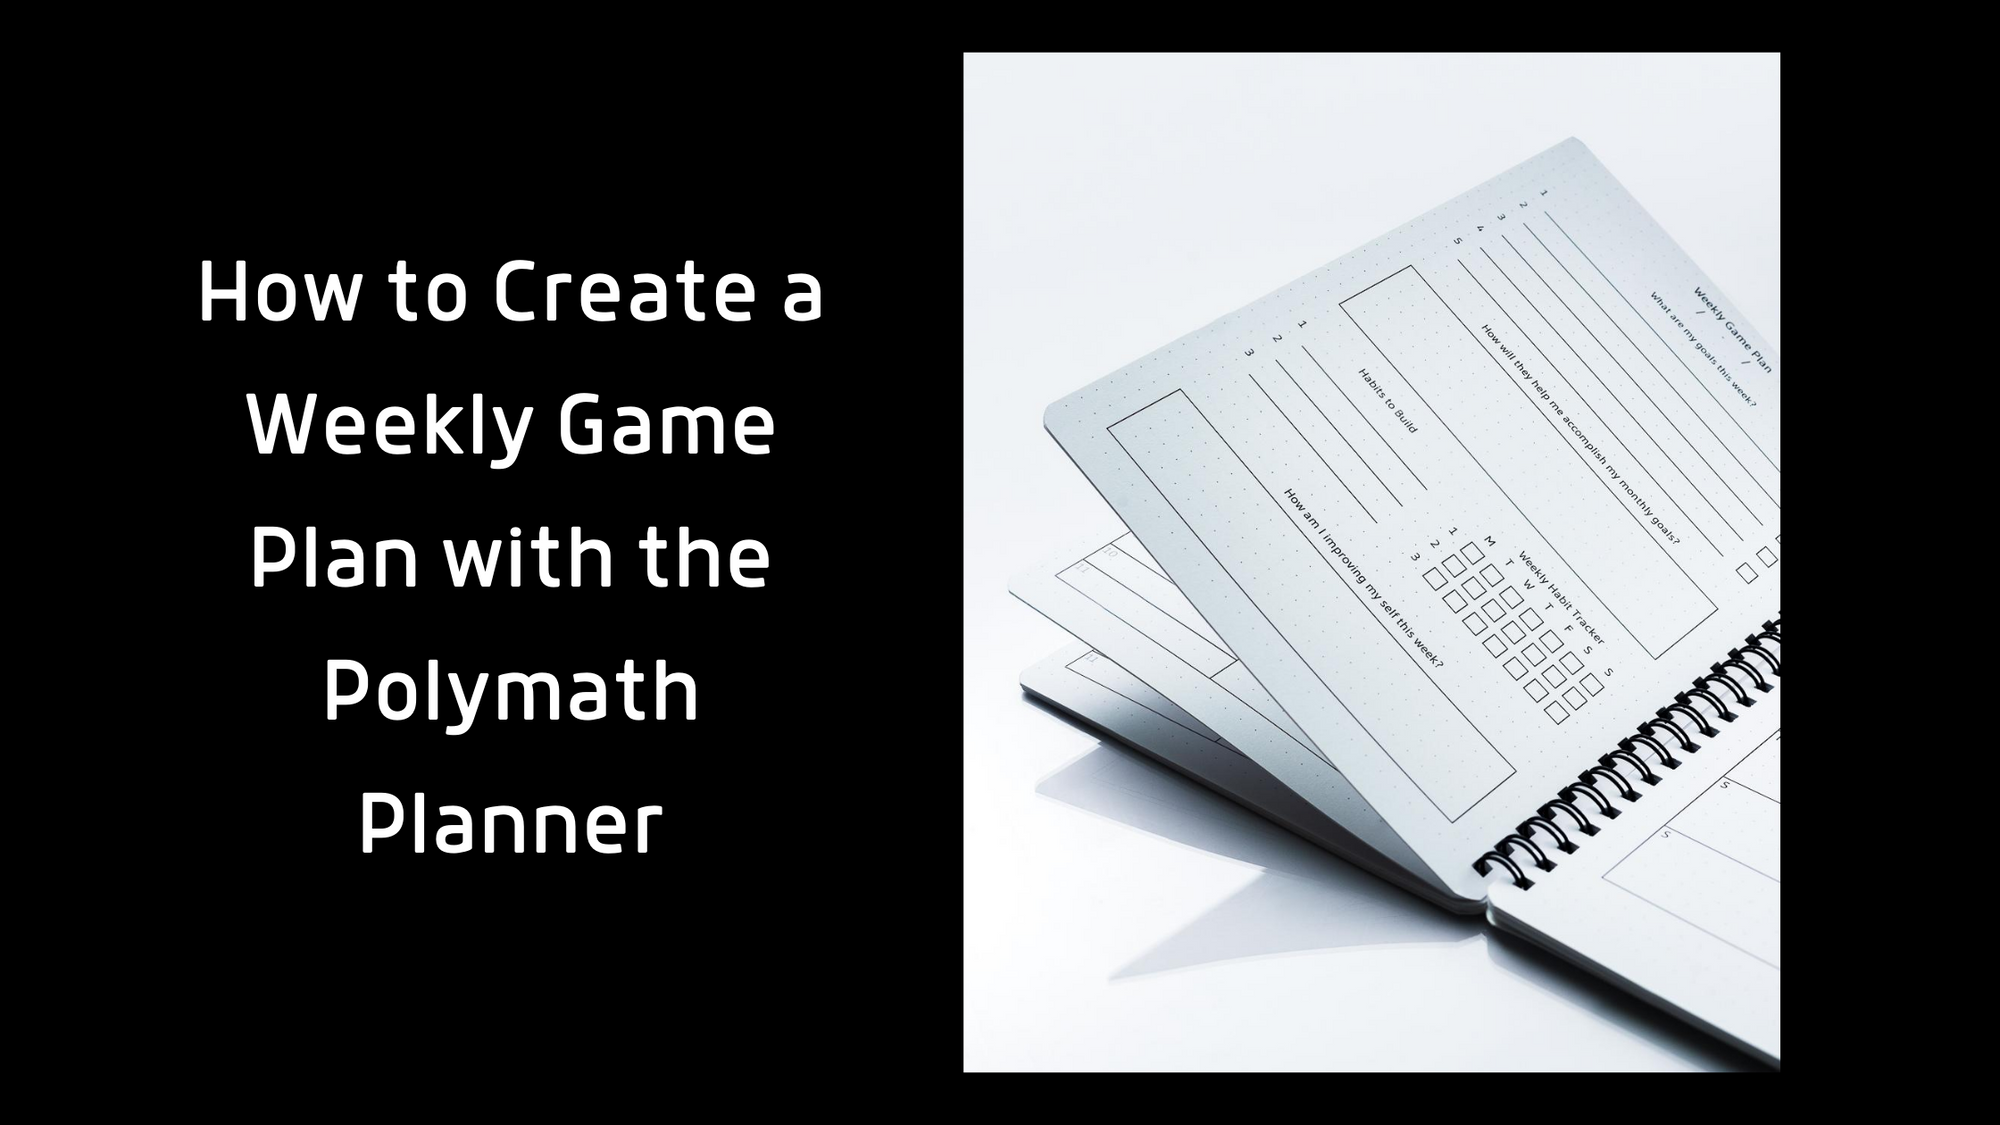 How to Create a Weekly Game Plan with the Polymath Planner